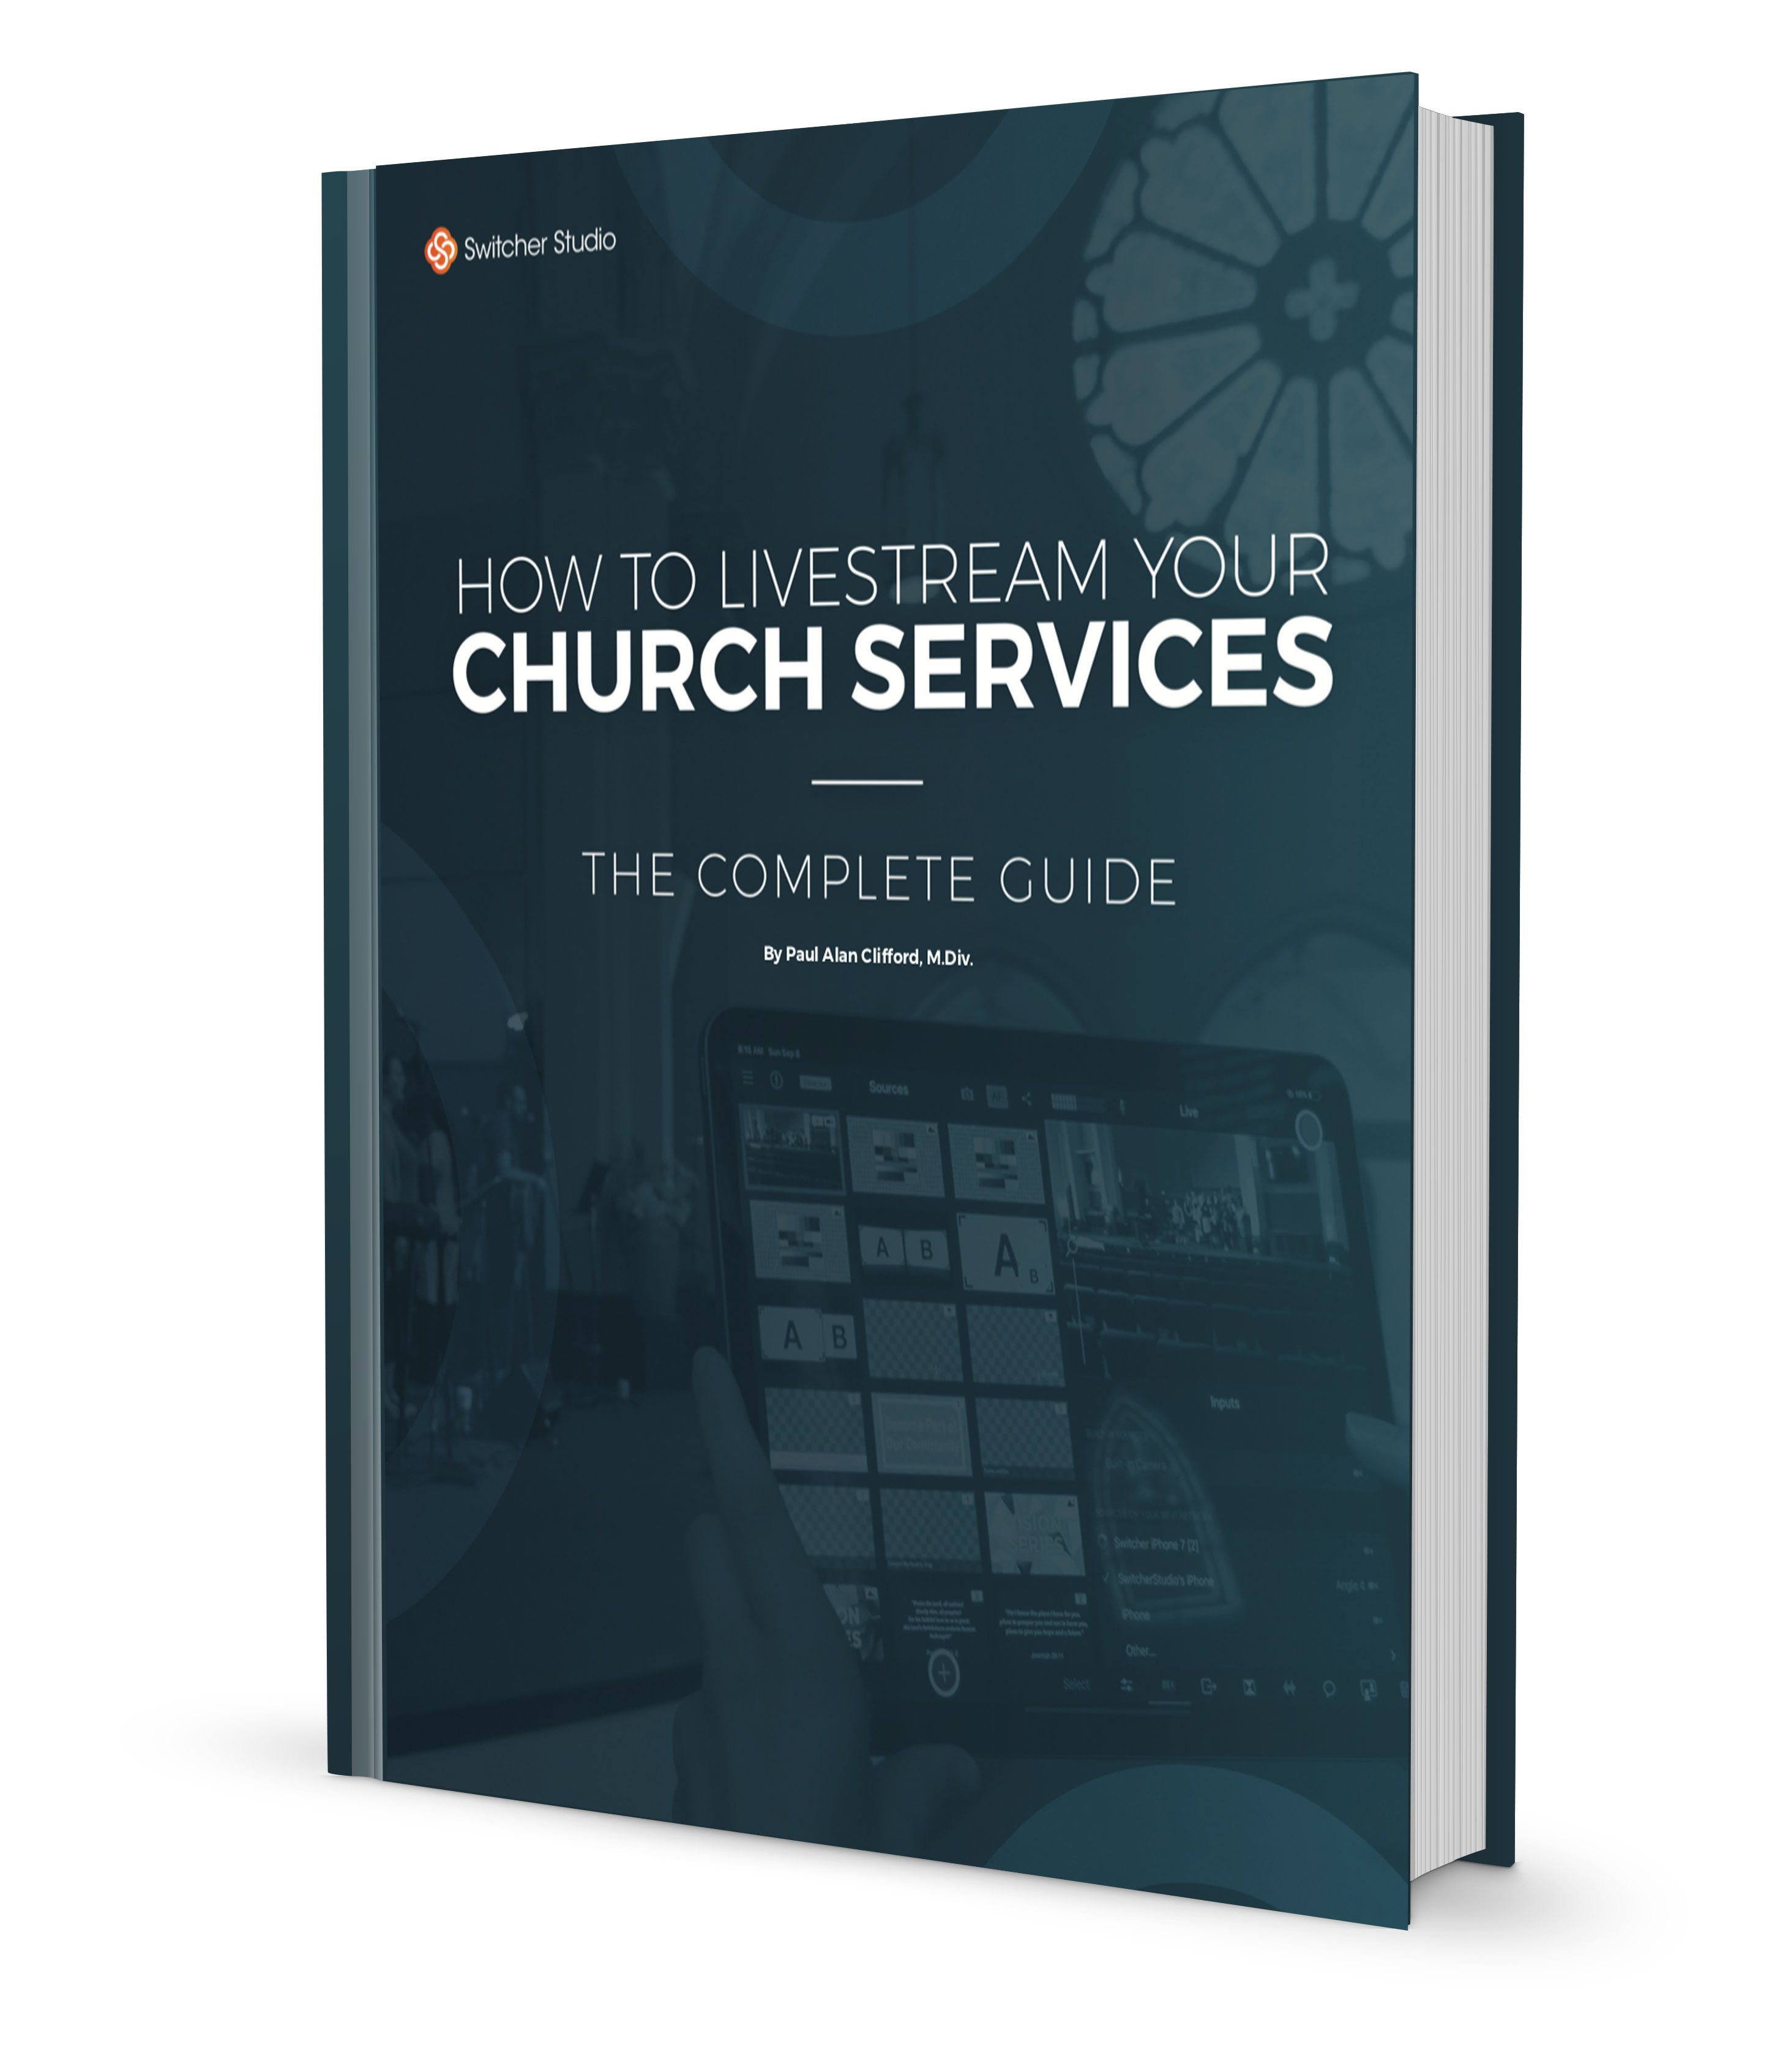 How to livestream your church services guide cover.